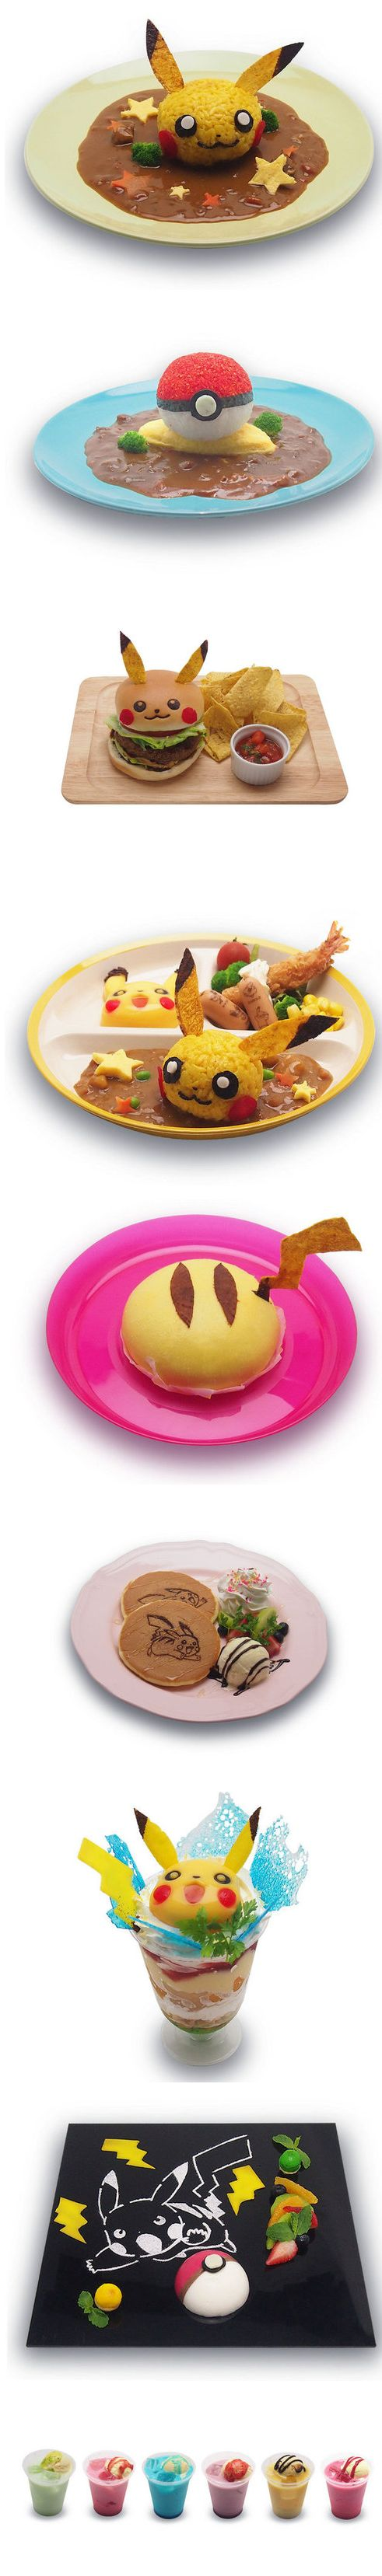 Ahh!So cute!!!! I've seen these dishes in the Pikachu cafe in Japan, the cafewas only there for a limited time though :(